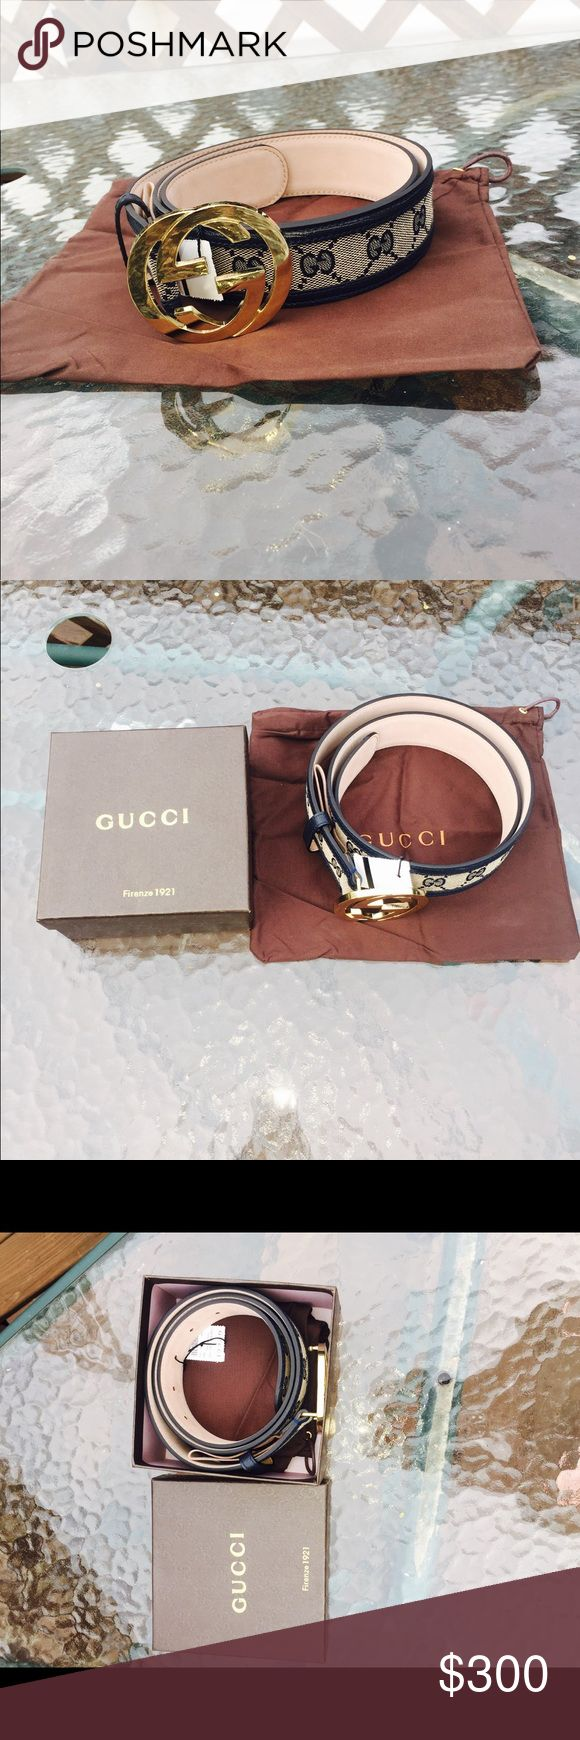 New Gucci belt New Gucci belt authentic. Perfect, I just didn't want it anymore cause I have a different belt. Only been out of the box ONCE. Perfect shape it looks amazing. I bought it for $325 Gucci Accessories Belts